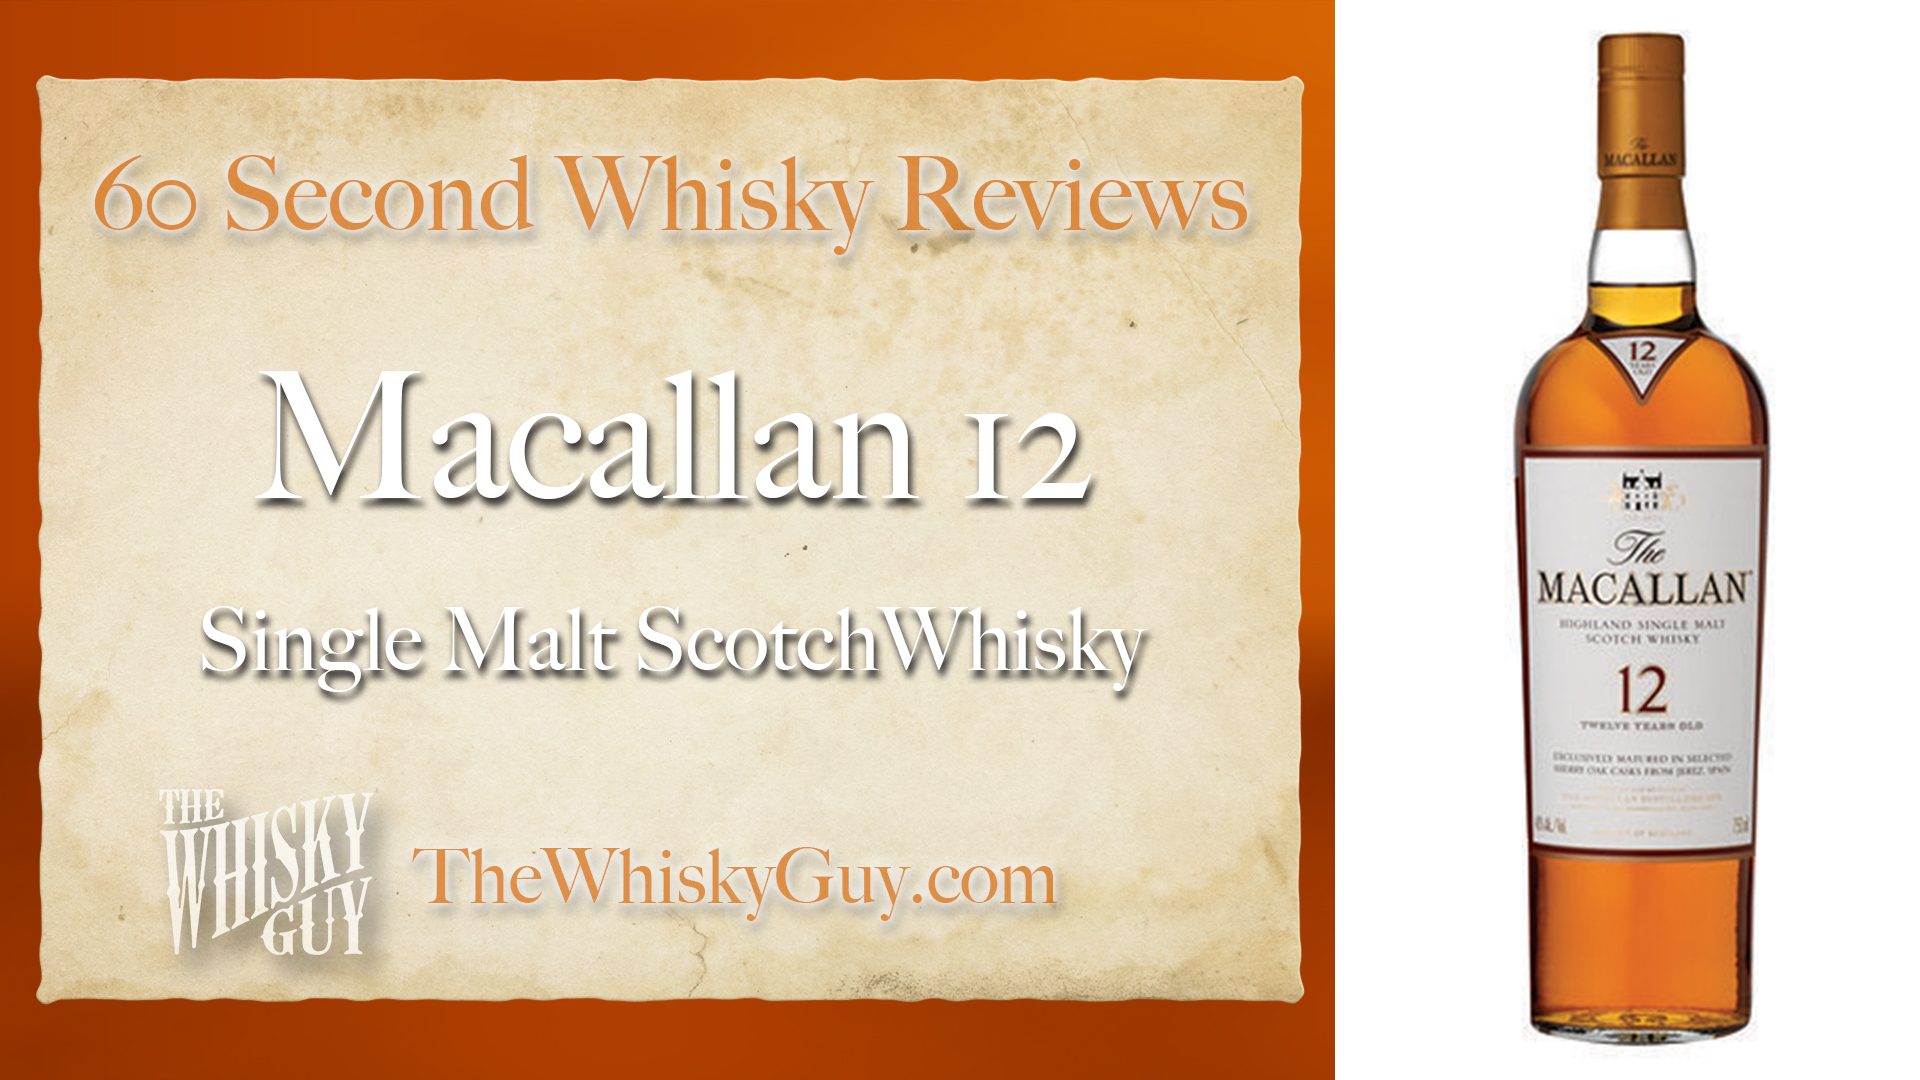 Does Macallan 12 Single Malt Scotch Whisky belong in your liquor cabinet? Is it worth the price at the bar? Give The Whisky Guy 60 seconds and find out! In just 60 seconds, The Whisky Guy reviews Irish Whiskey, Scotch Whisky, Single Malt, Canadian Whisky, Bourbon Whiskey, Japanese Whisky and other whiskies from around the world. Find more at TheWhiskyGuy.com. All original content © Ari Shapiro - TheWhiskyGuy.com